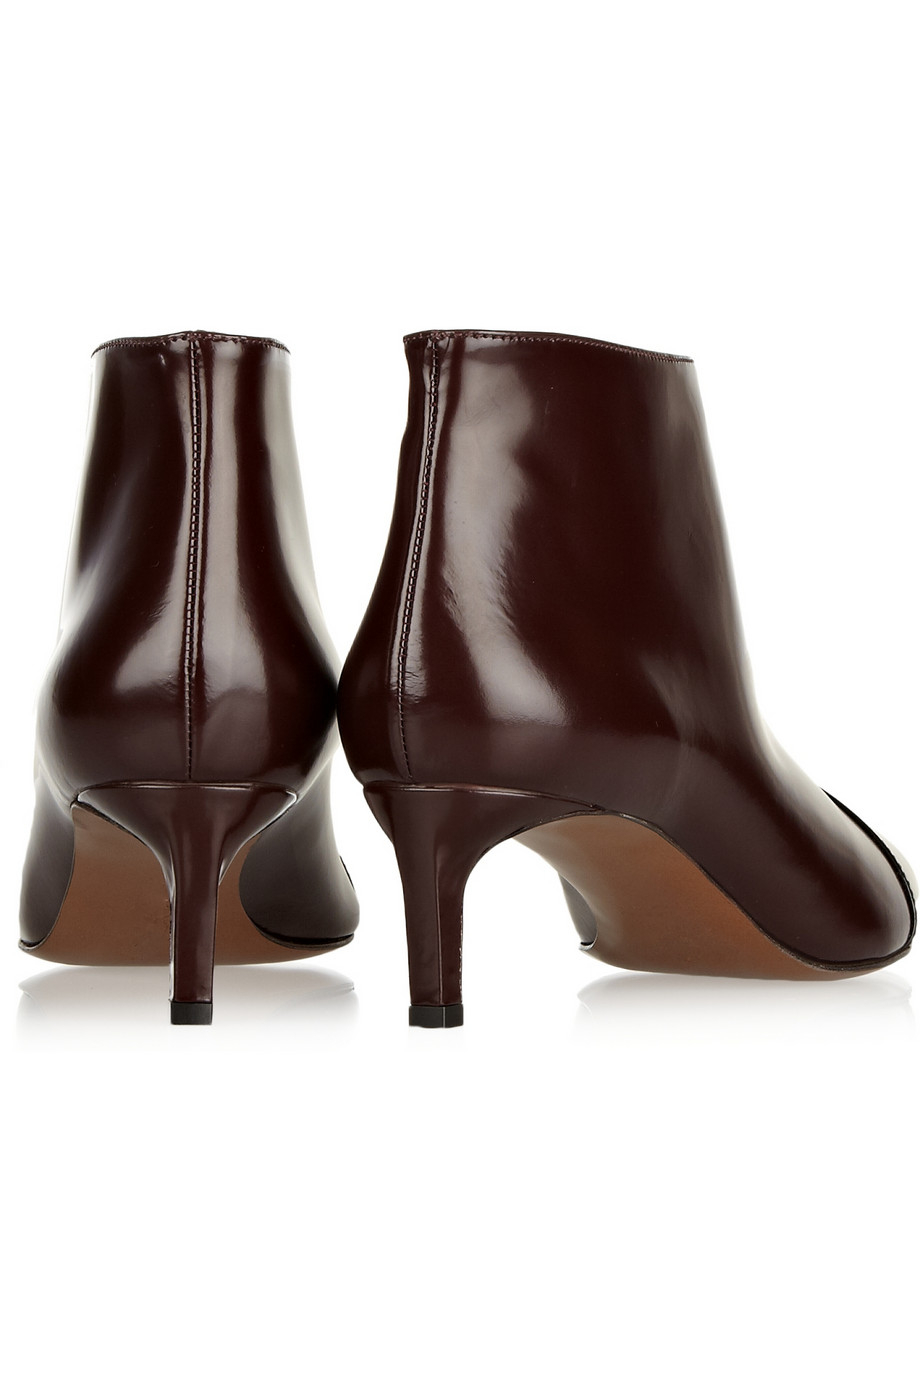 Marni Two-Tone Glossed-Leather Ankle Boots in Red